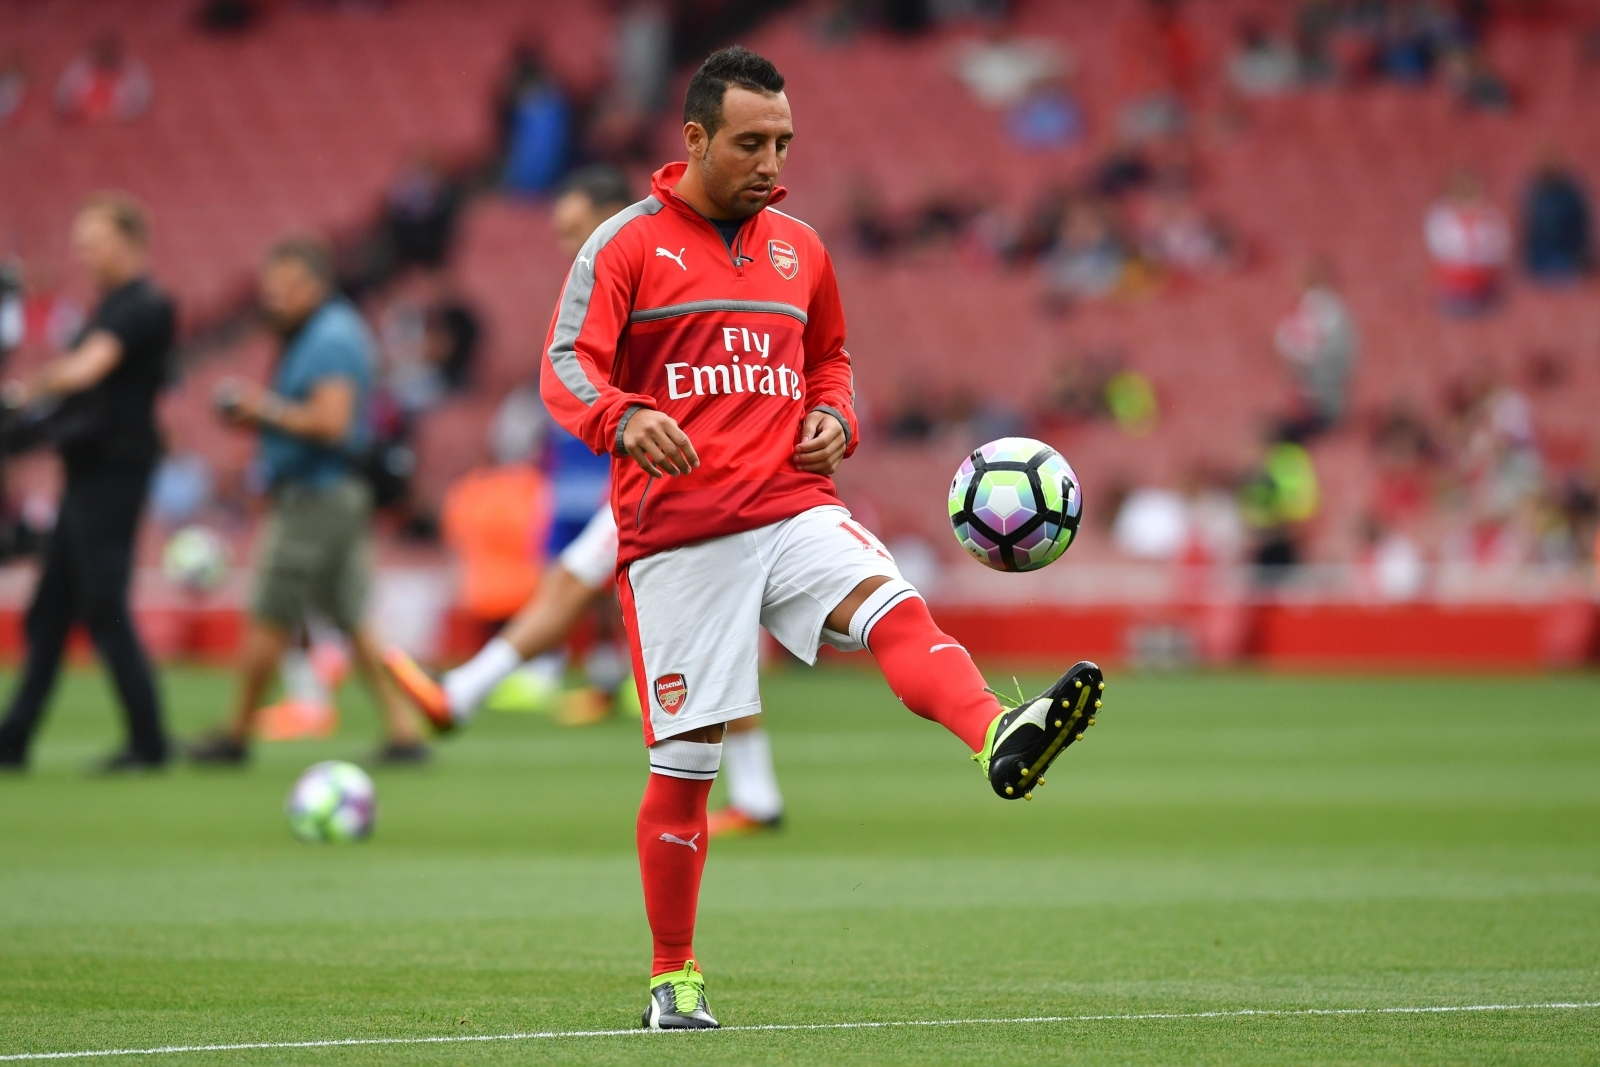 Arsenal leave injury plagued Santi Cazorla out of 25 man Premier